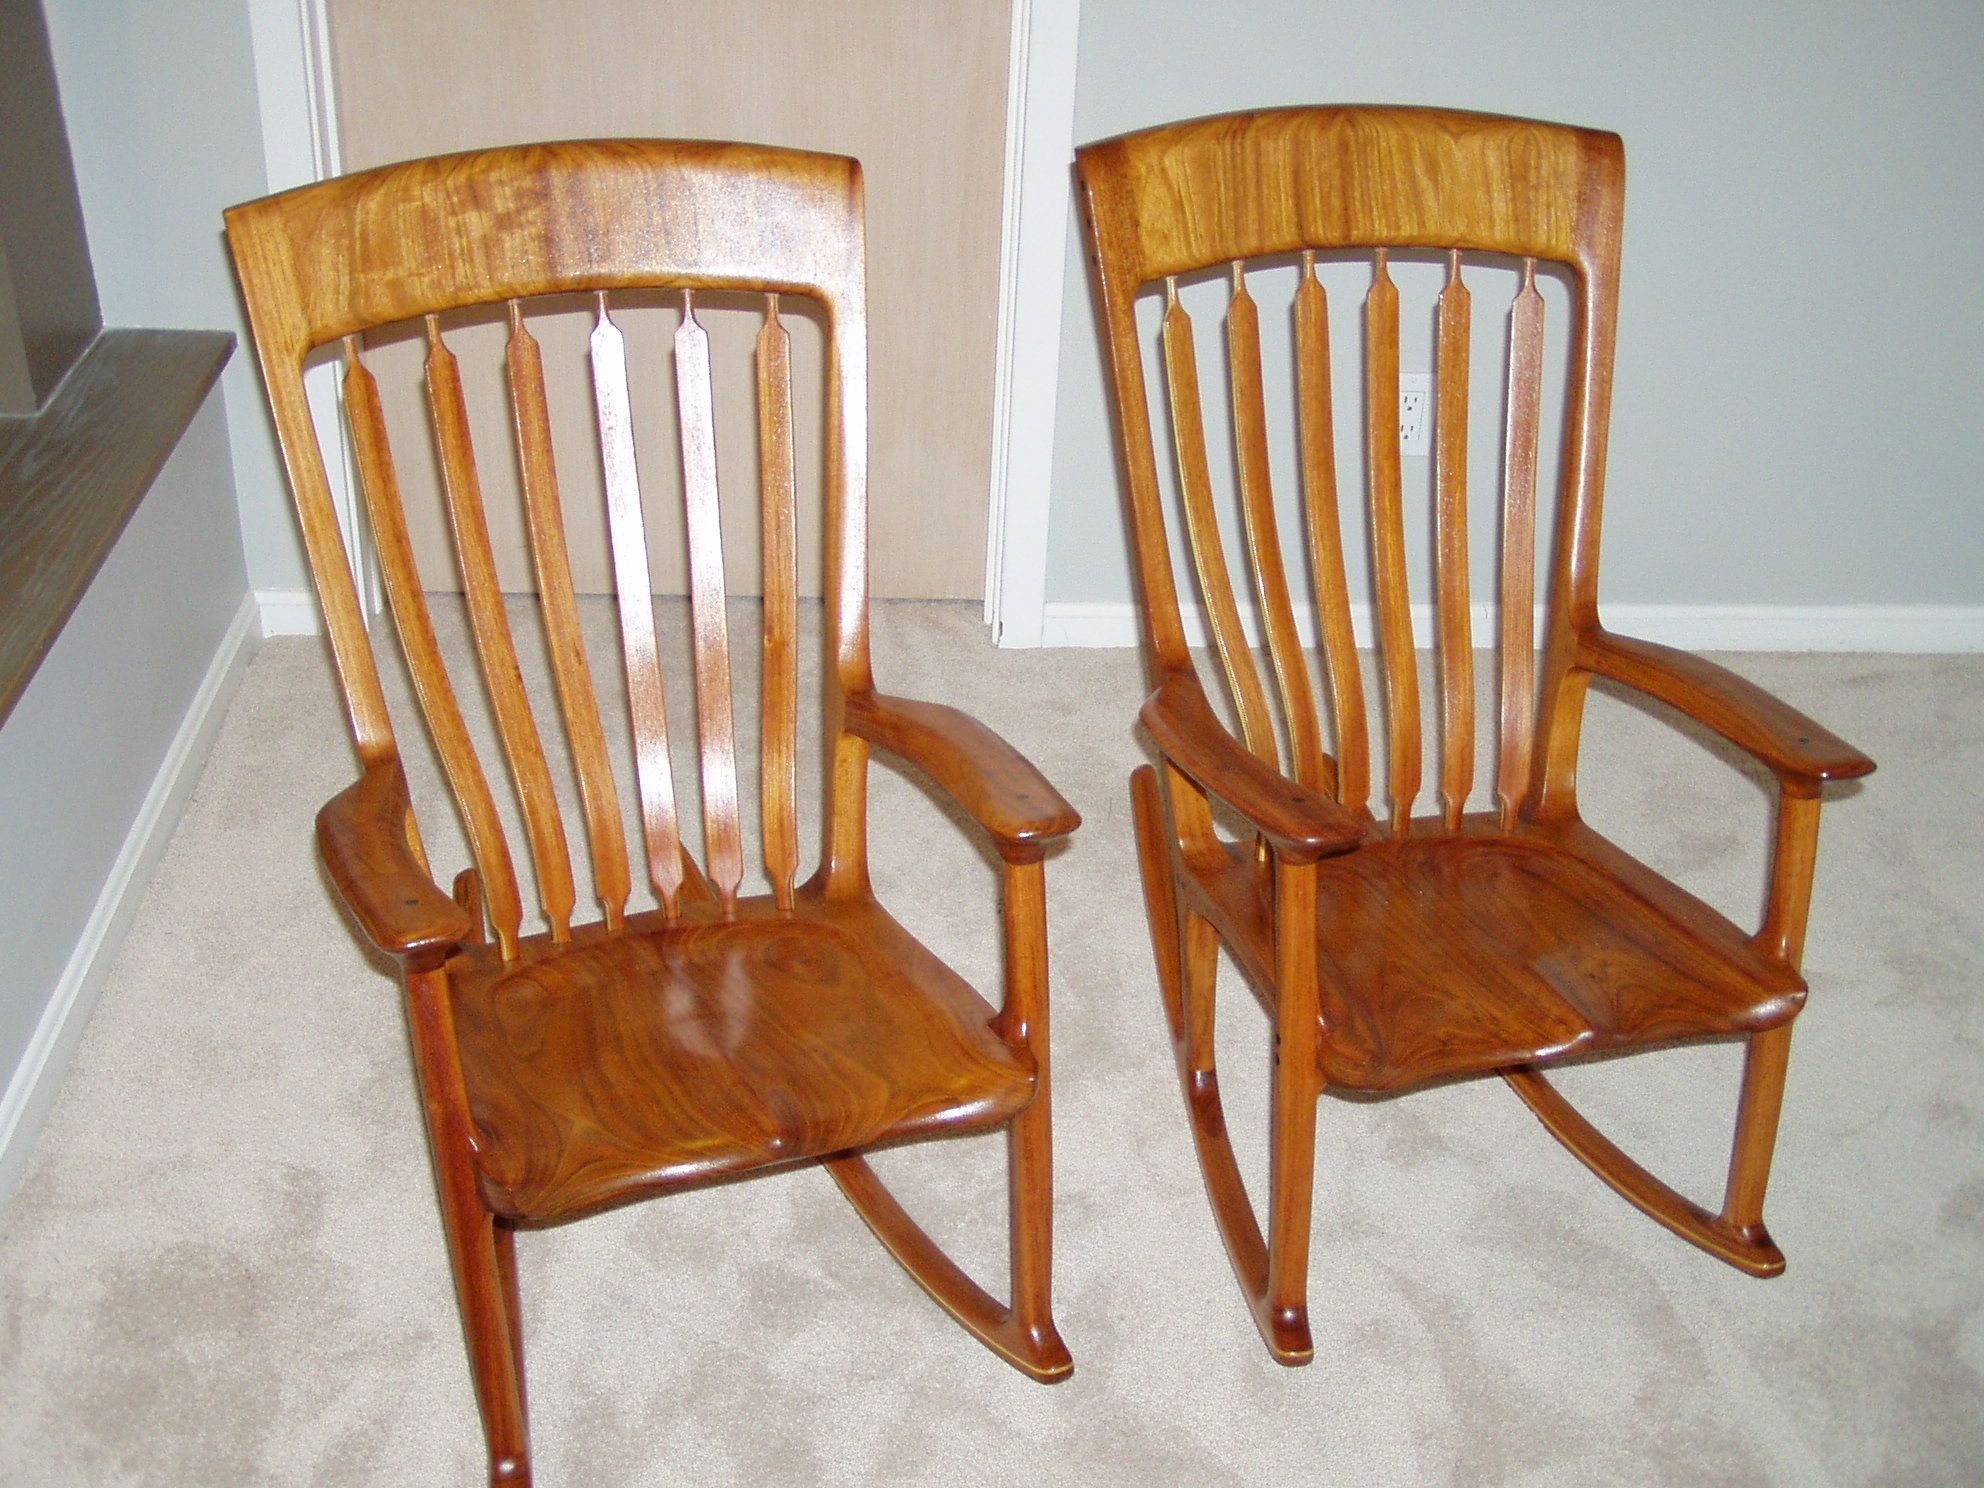 Admirable Pin By Ohm Rocking Chairs On Maloof Inspired Child Size Machost Co Dining Chair Design Ideas Machostcouk